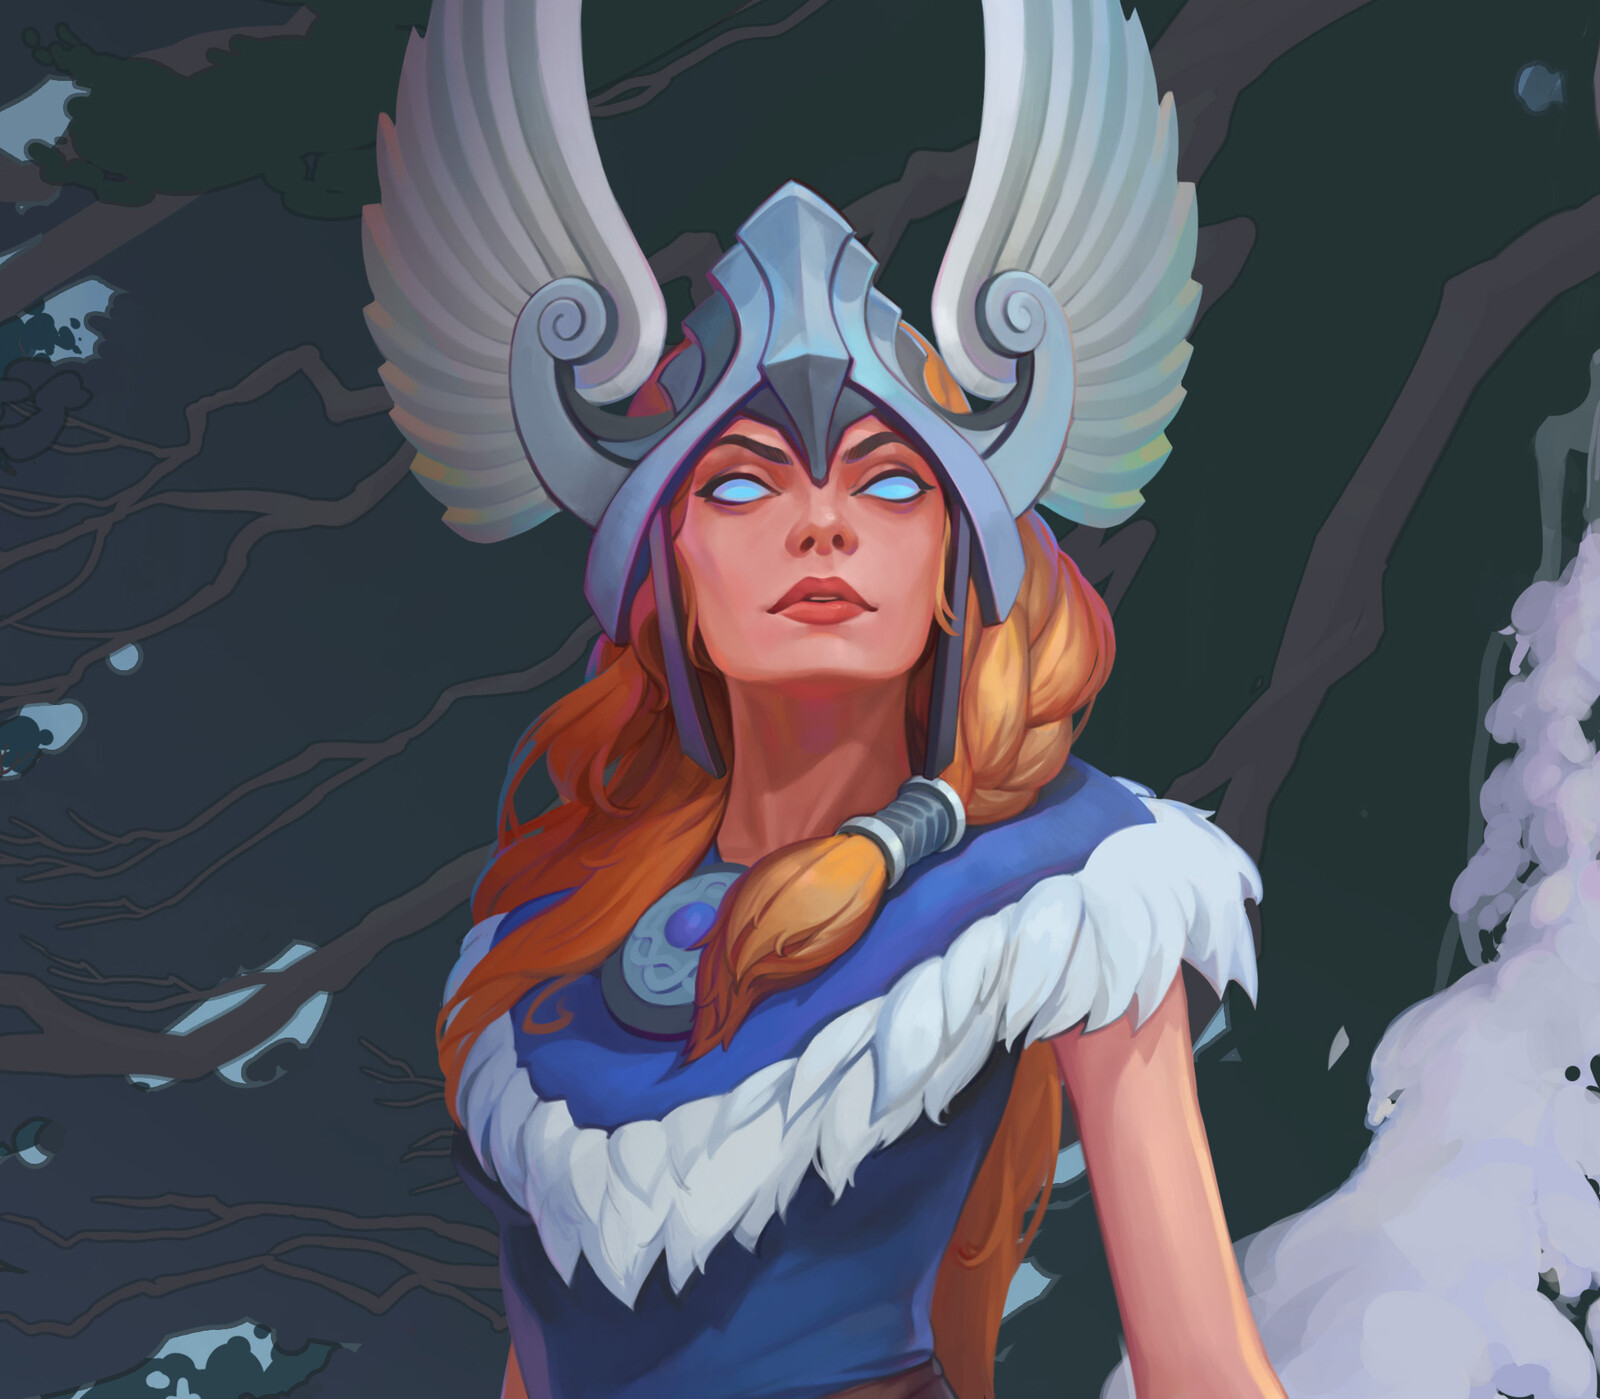 Stockholm Crystal Maiden (Dreamleague)